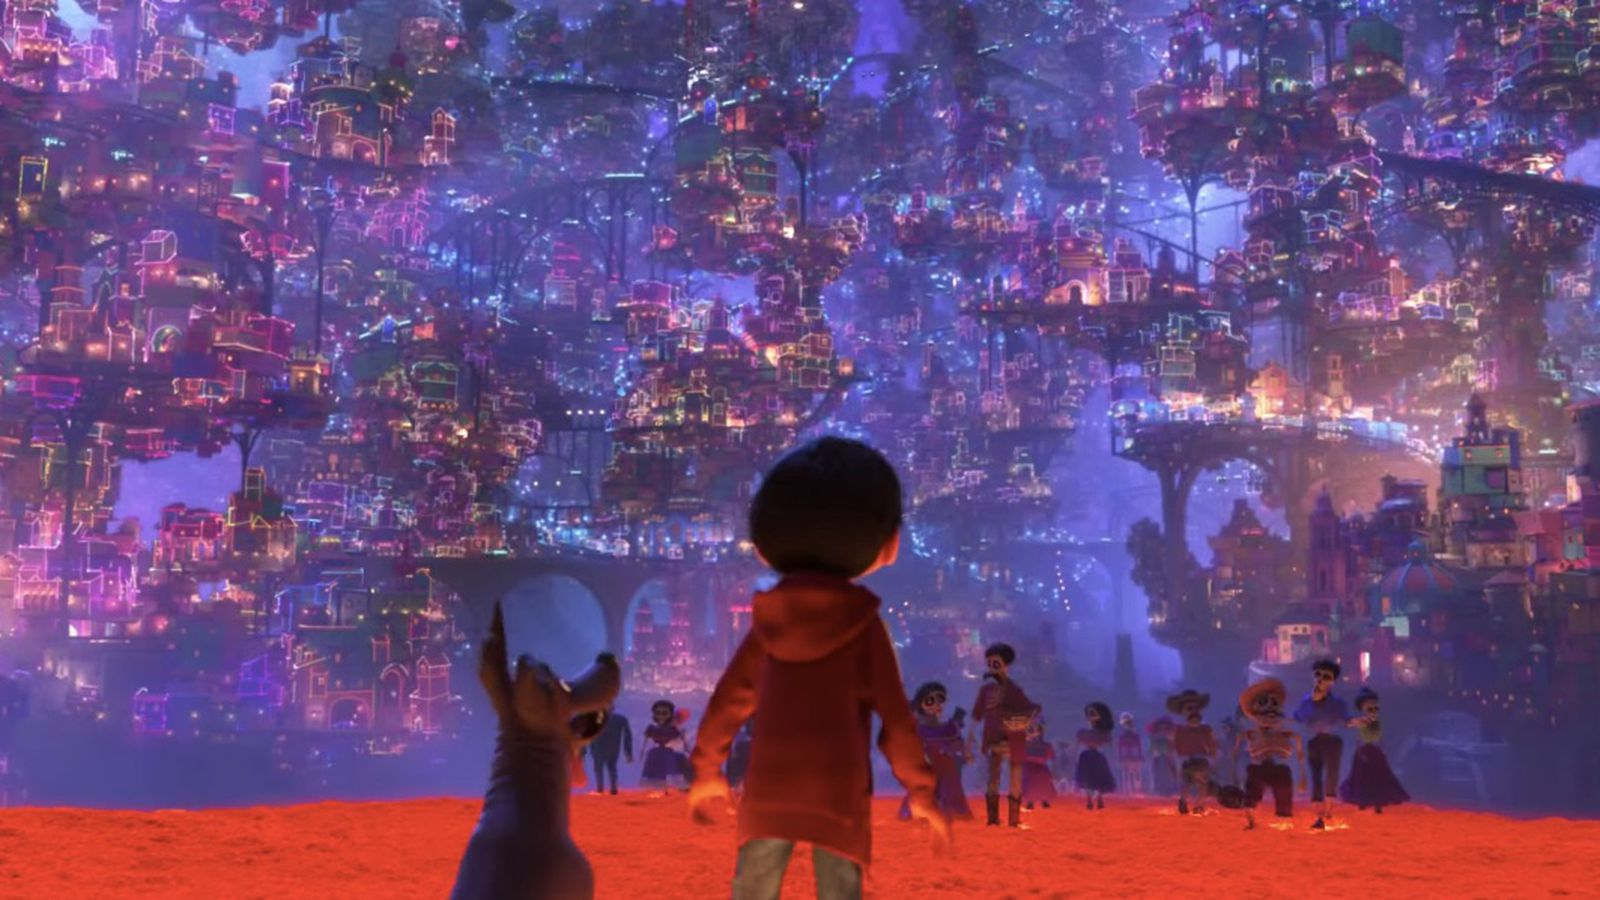 Pixar drops trailer for animated film Coco   CNET 1600x900